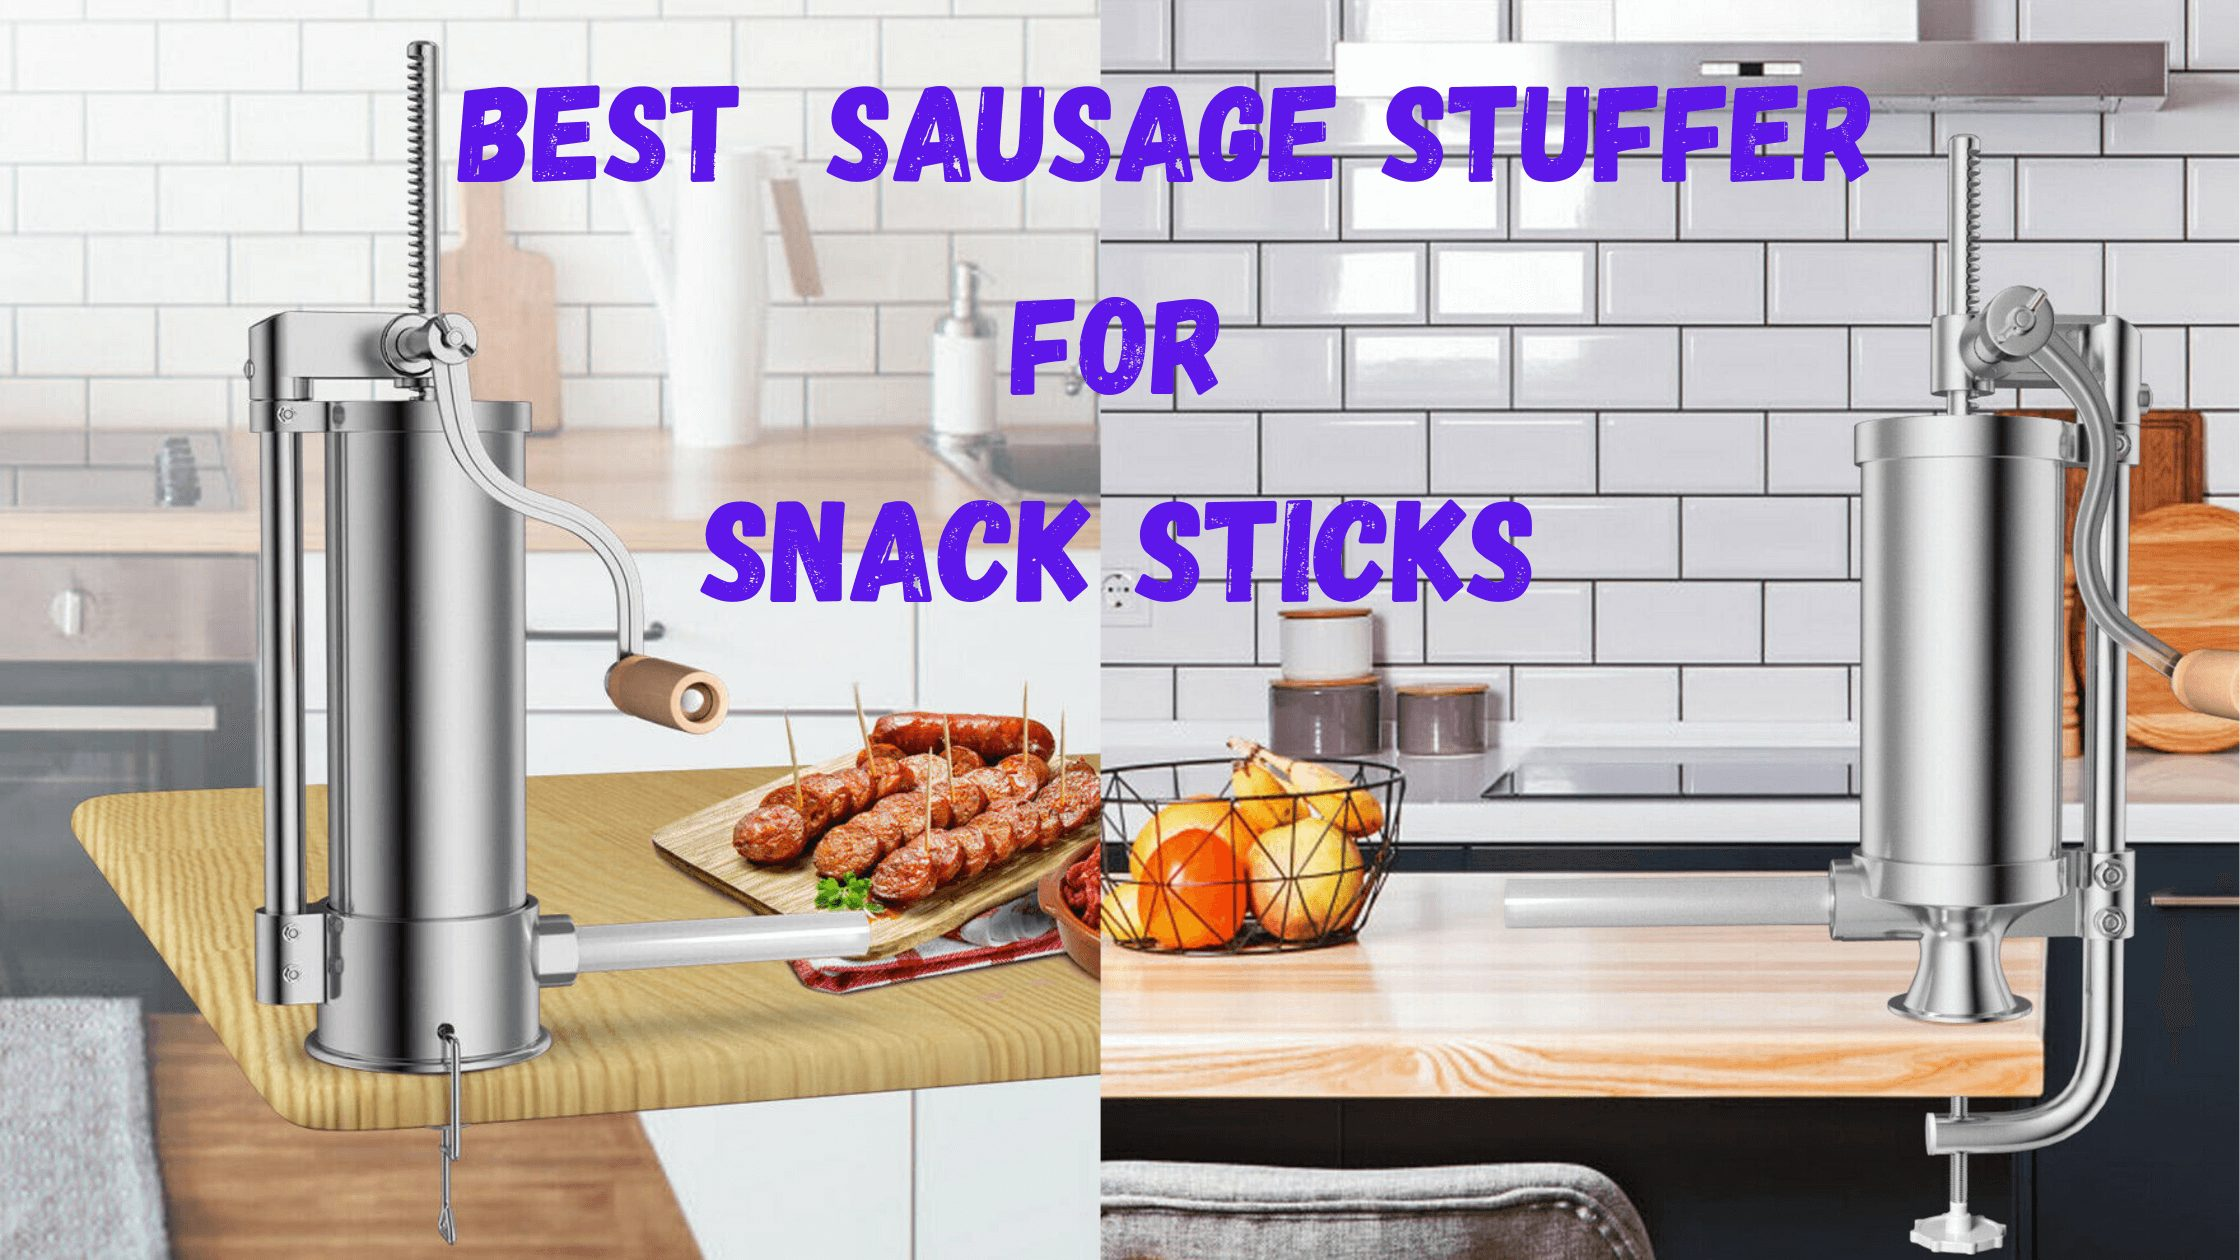 best sausage stuffer for snack sticks